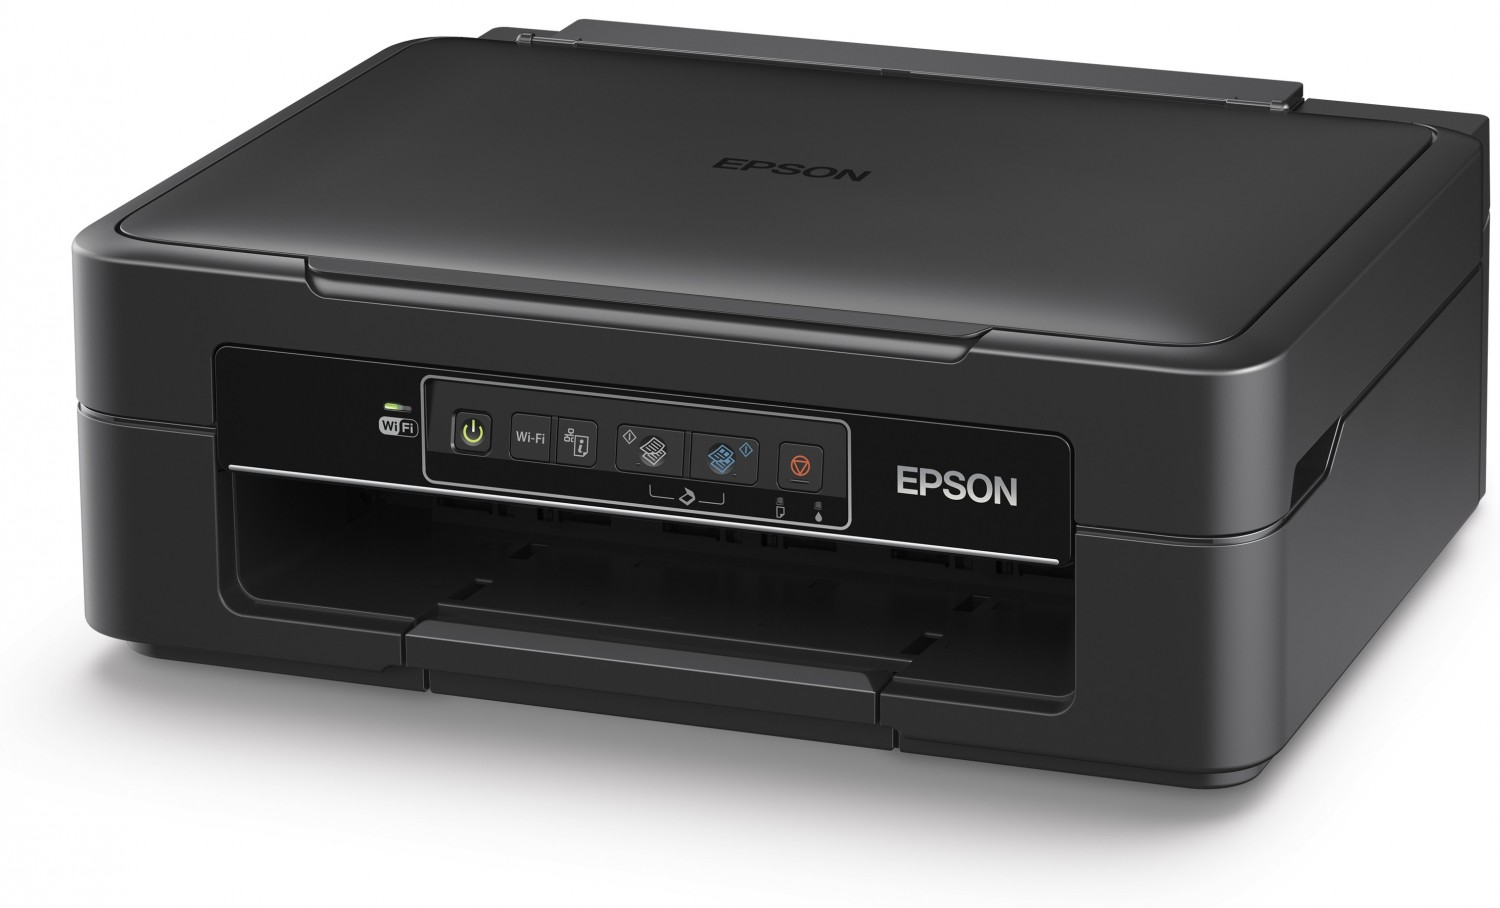 epson mfp eh xp 235 4 ink a4 usb wifi 3pl 26ppm drukarki i urz dzenia wielofunkcyjne. Black Bedroom Furniture Sets. Home Design Ideas